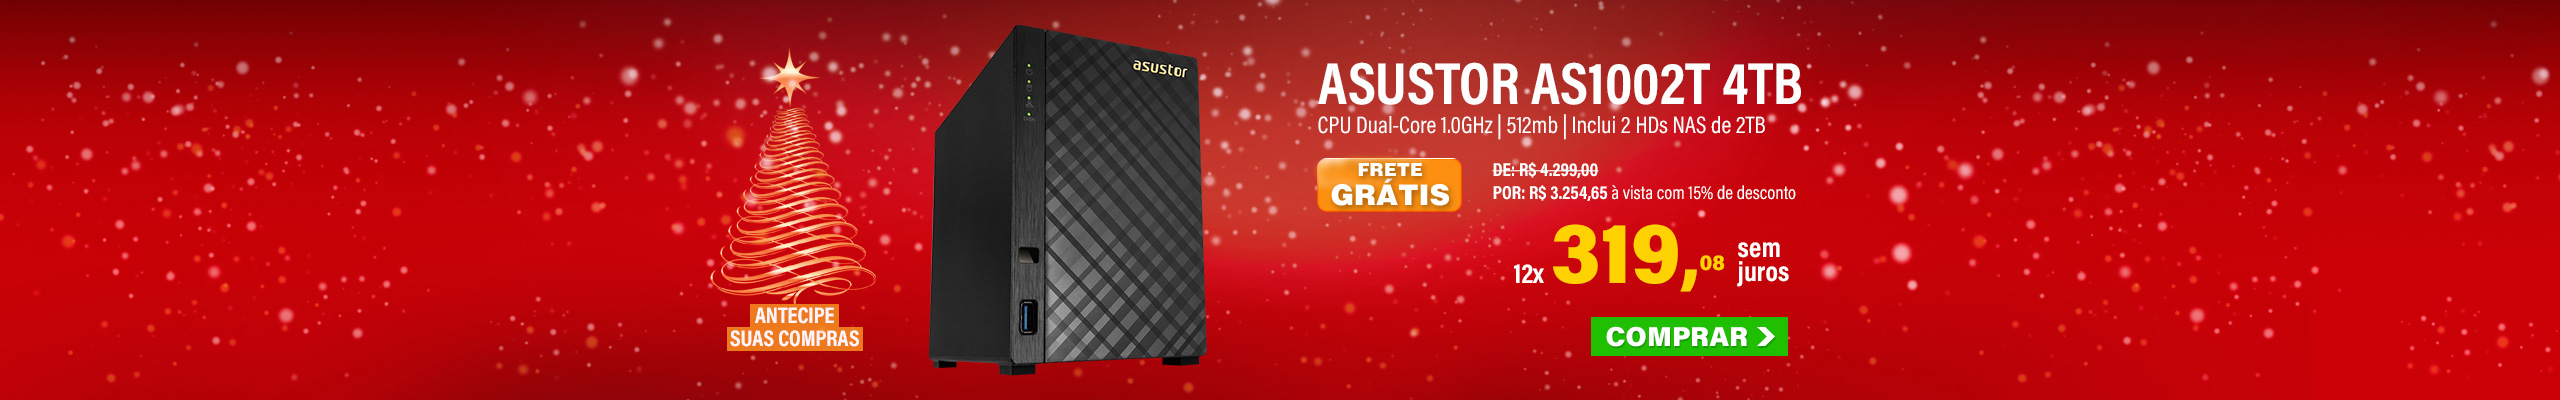 NAS ASUSTOR | AS1002T + 4TB | INCLUI 2 HDS NAS DE 2TB | GIGABIT | MPN: AS1002T